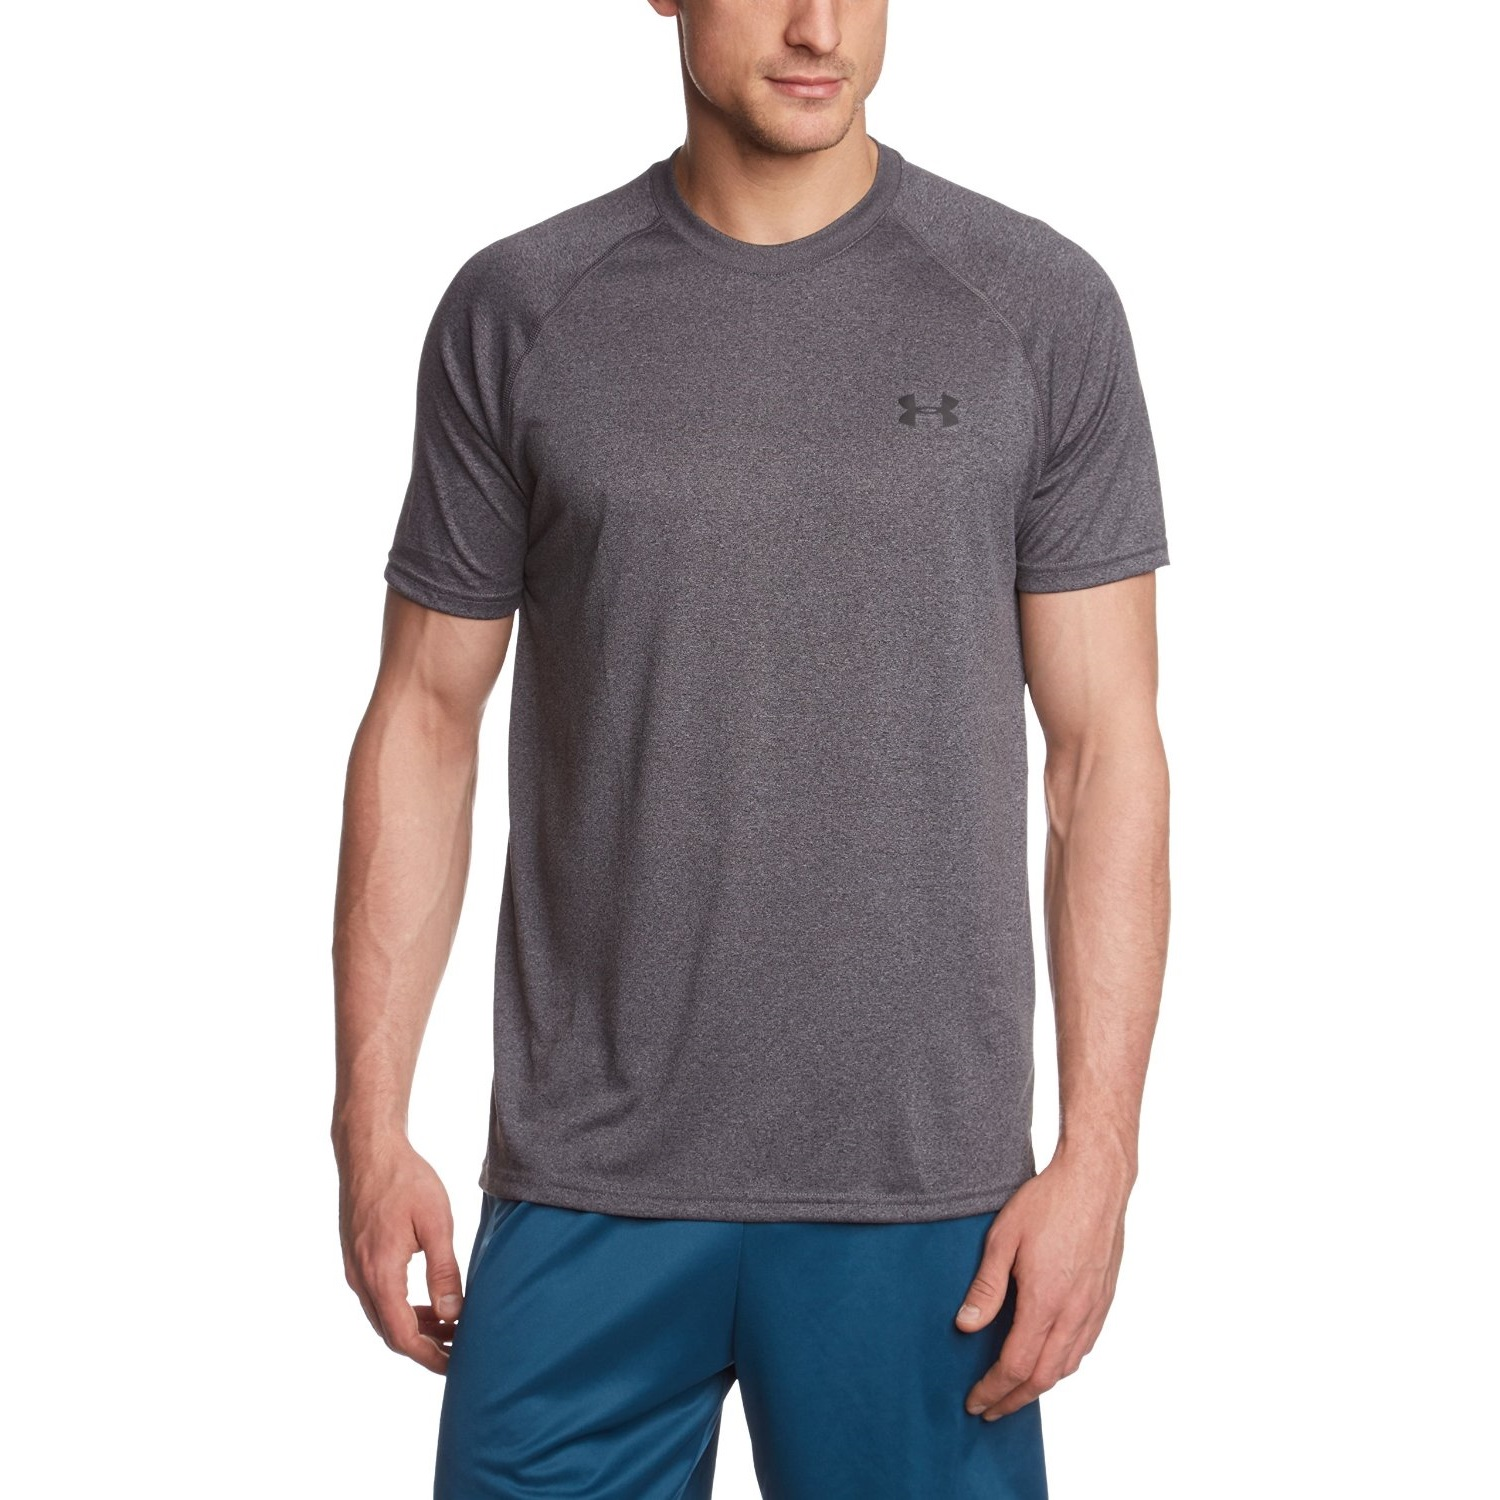 Under armour men s tech short sleeve yoga t shirt for Men s fashion short sleeve shirts